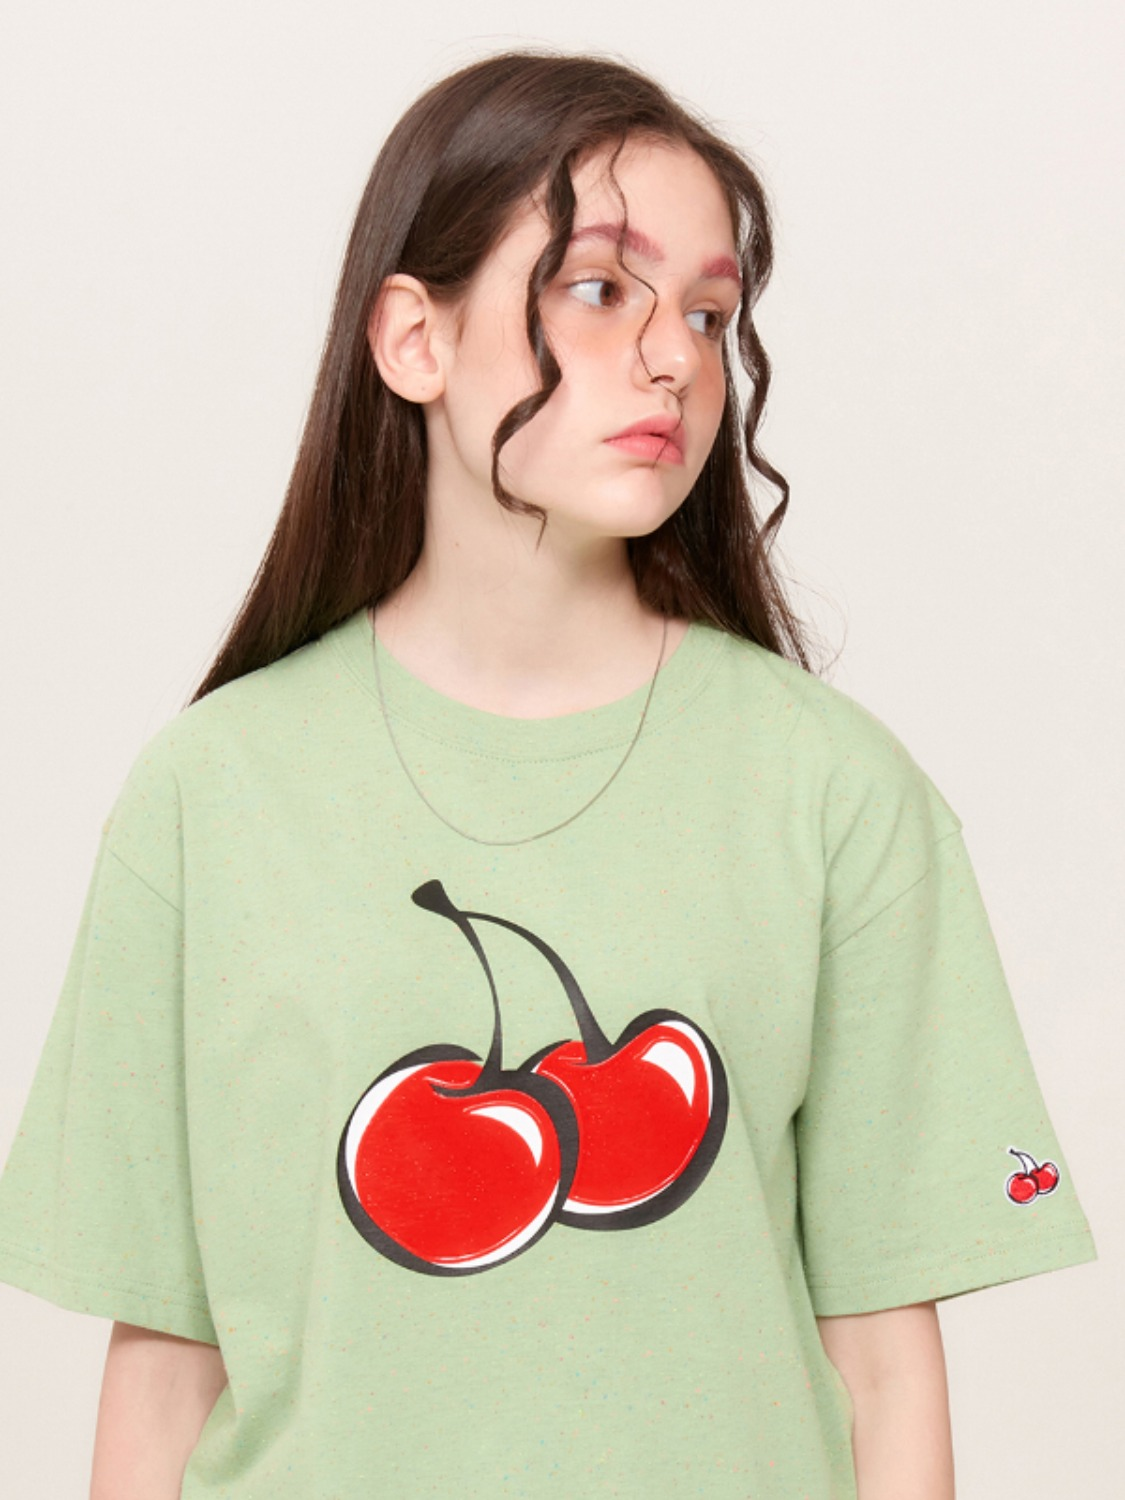 BIG CHERRY JELLY T-SHIRT KS [LIME] / 송강 포토 카드 증정